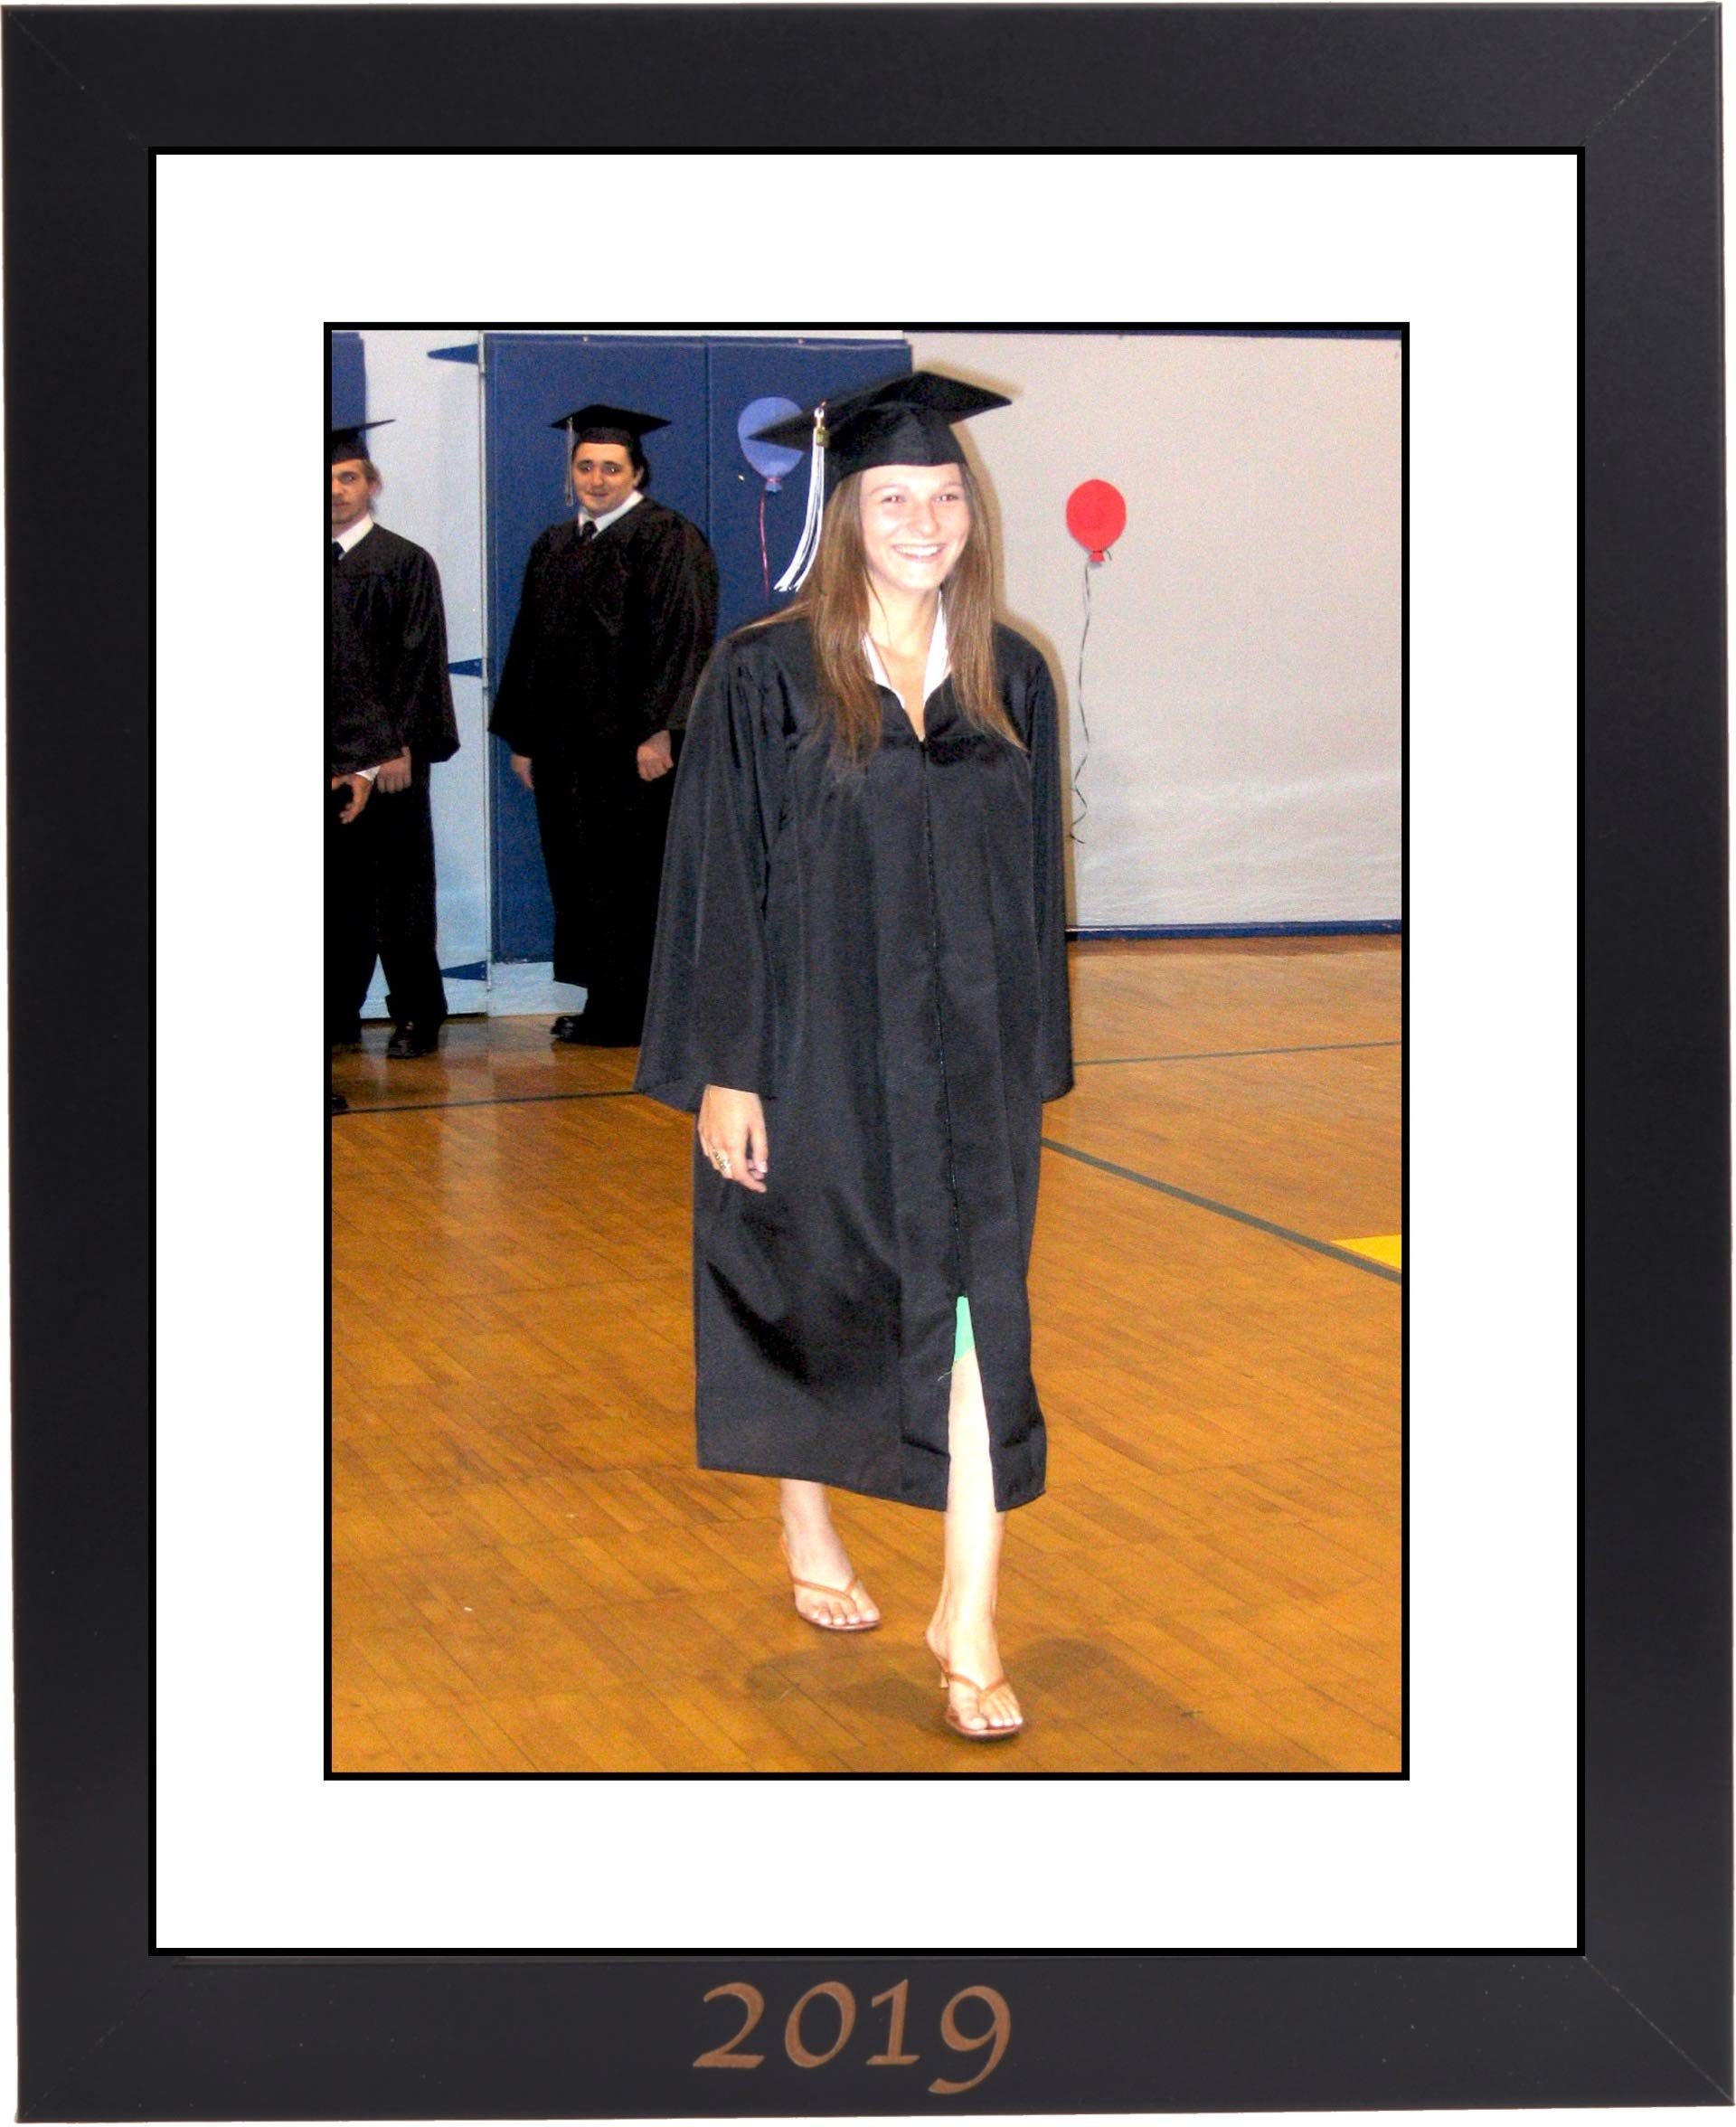 CreativePF [11x14bk] 2019 Black Graduation Frame with 11x14-inch White Mat Holds 8.5x11-inch Photo Media, with Stand and Installed Hangers